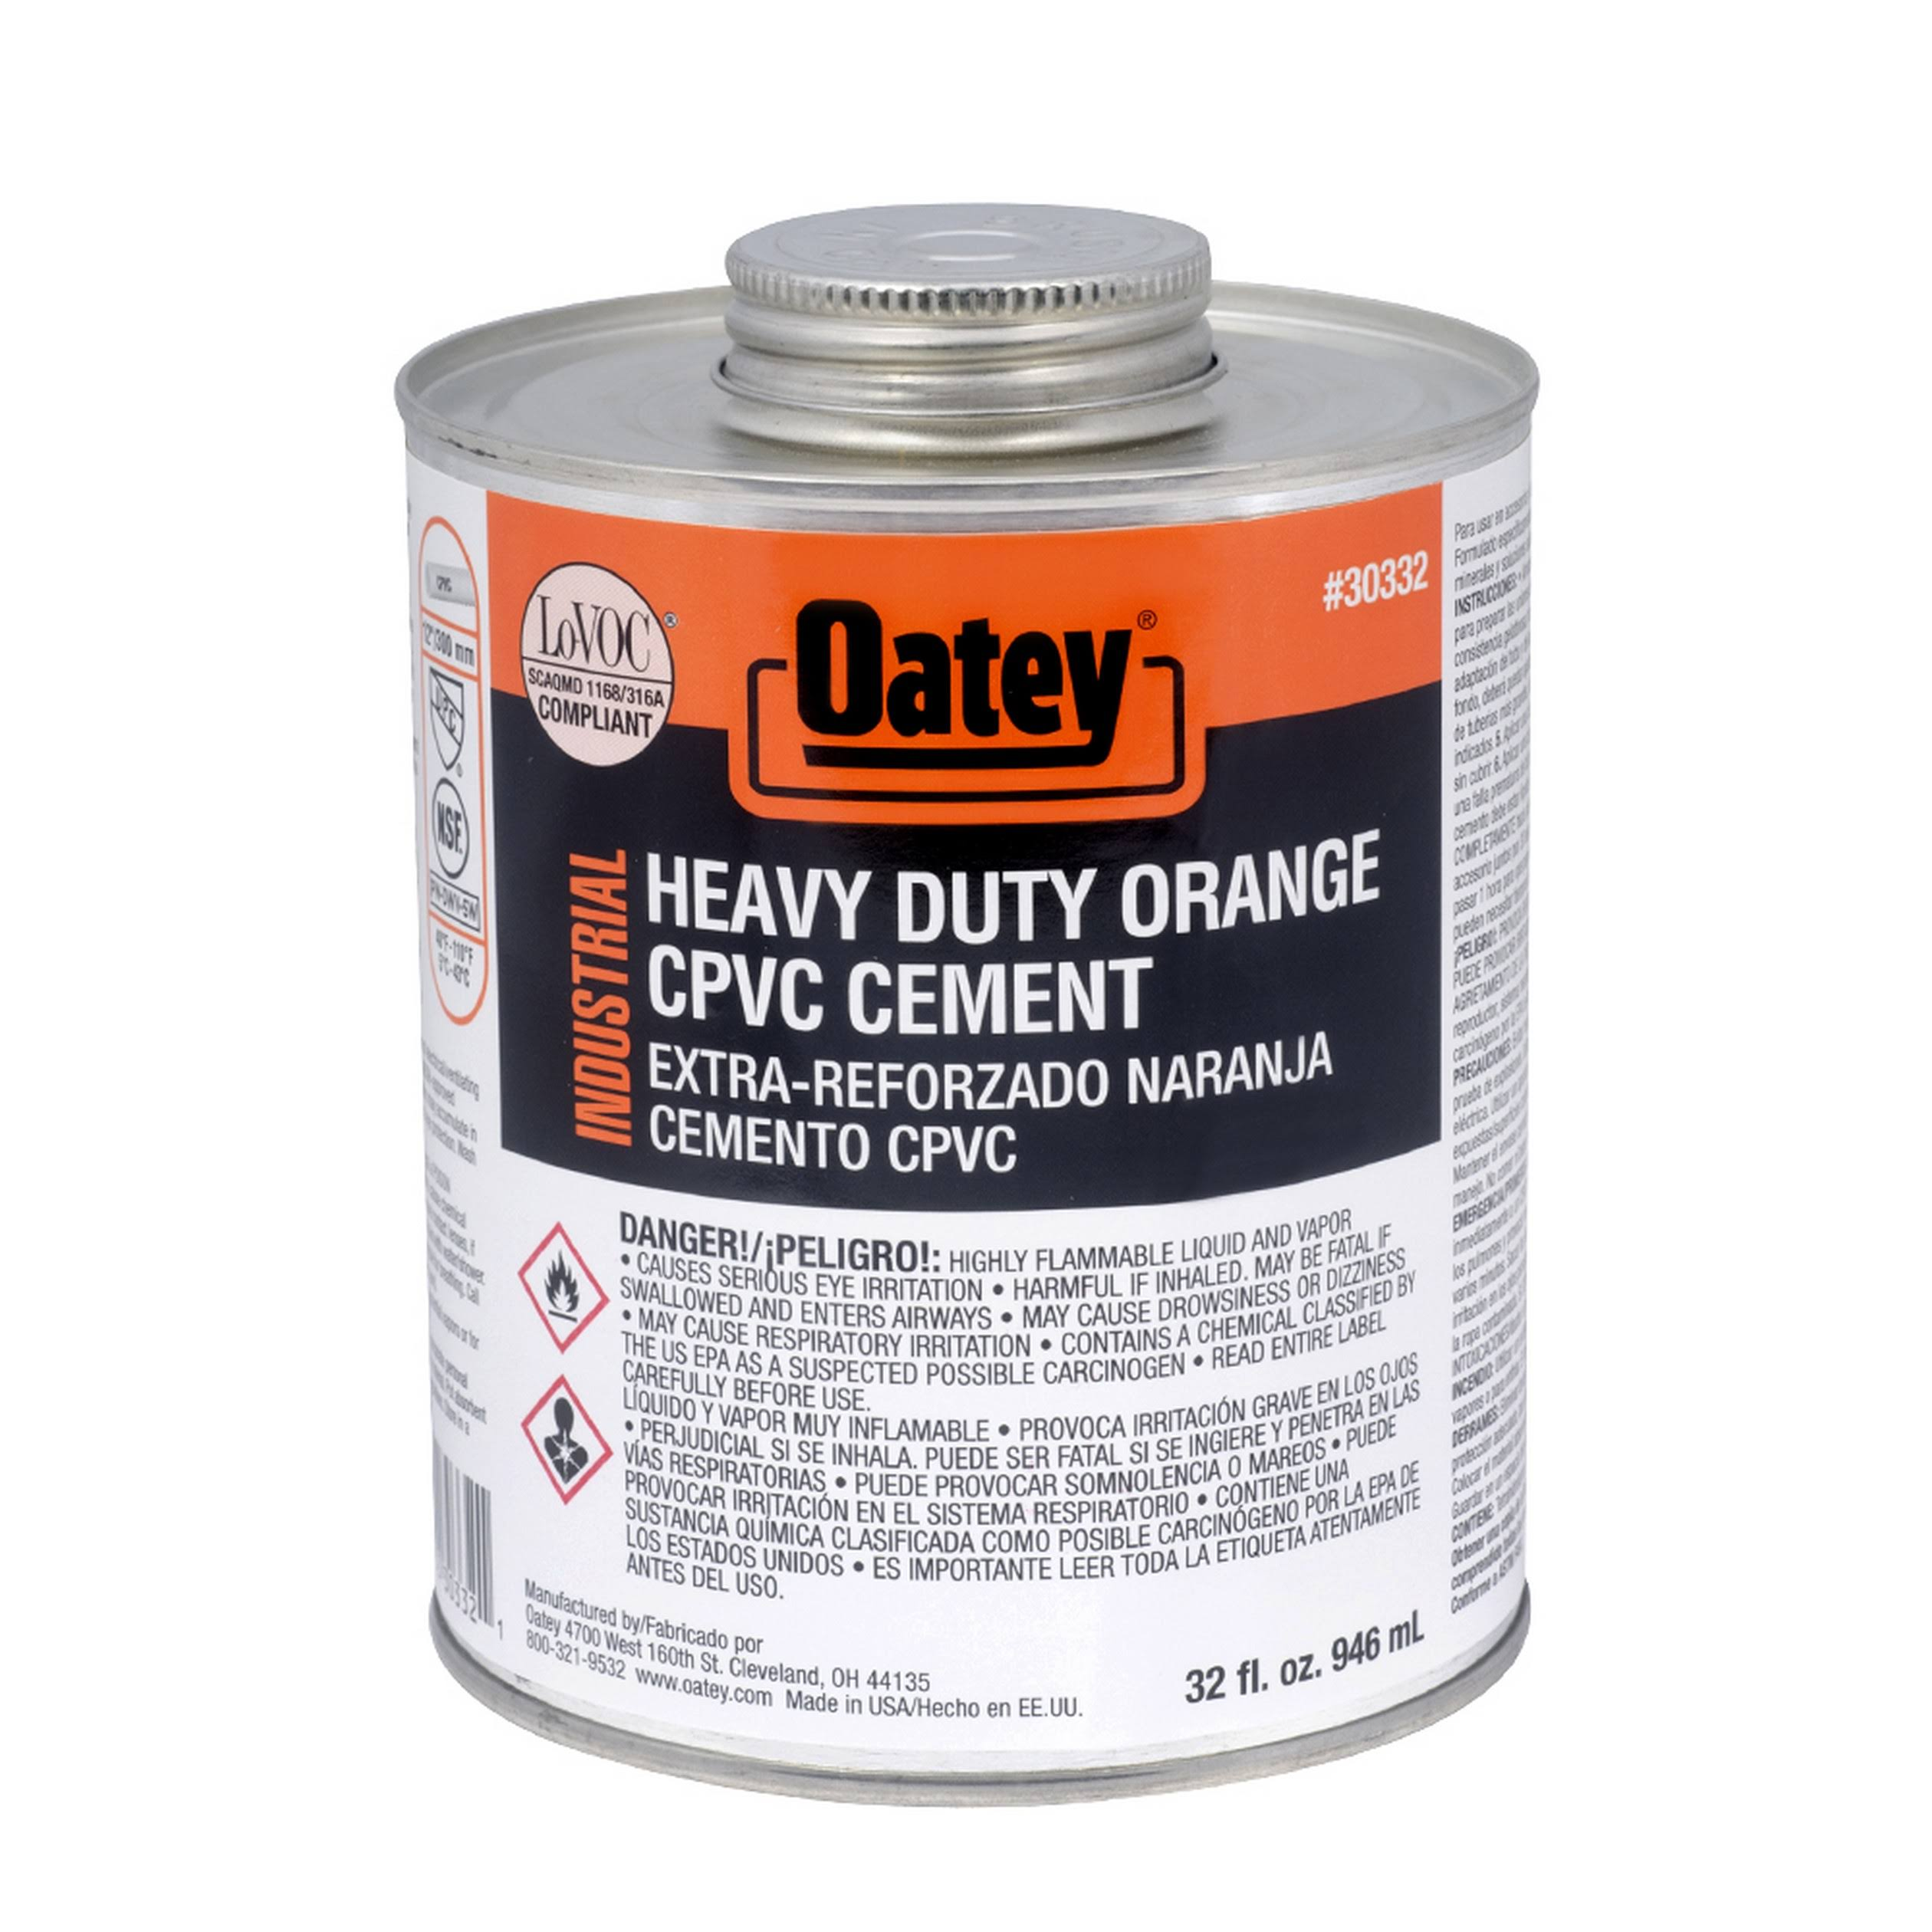 Oatey 31129 CPVC Cement - Medium Orange, 8oz